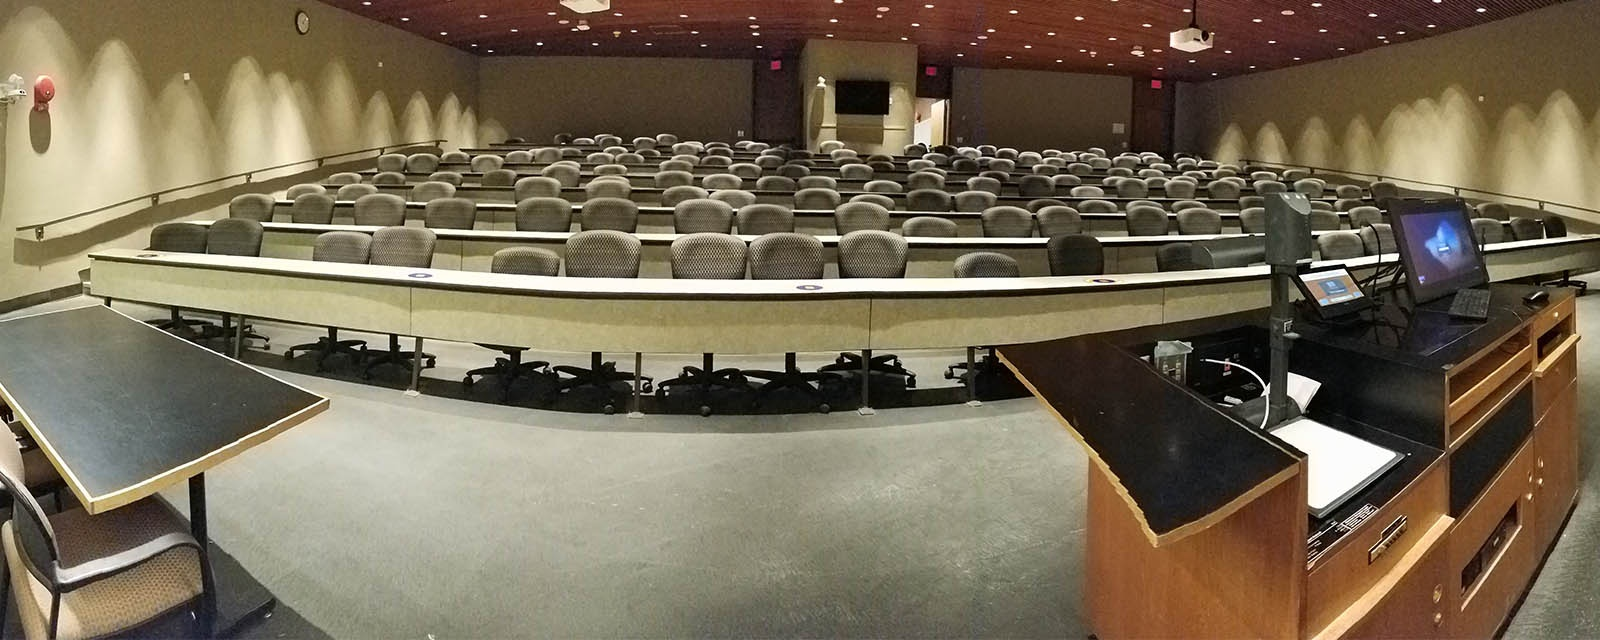 Panorama Heroy auditorium from front of room to back of room, stadium seating with tables, teaching station front center